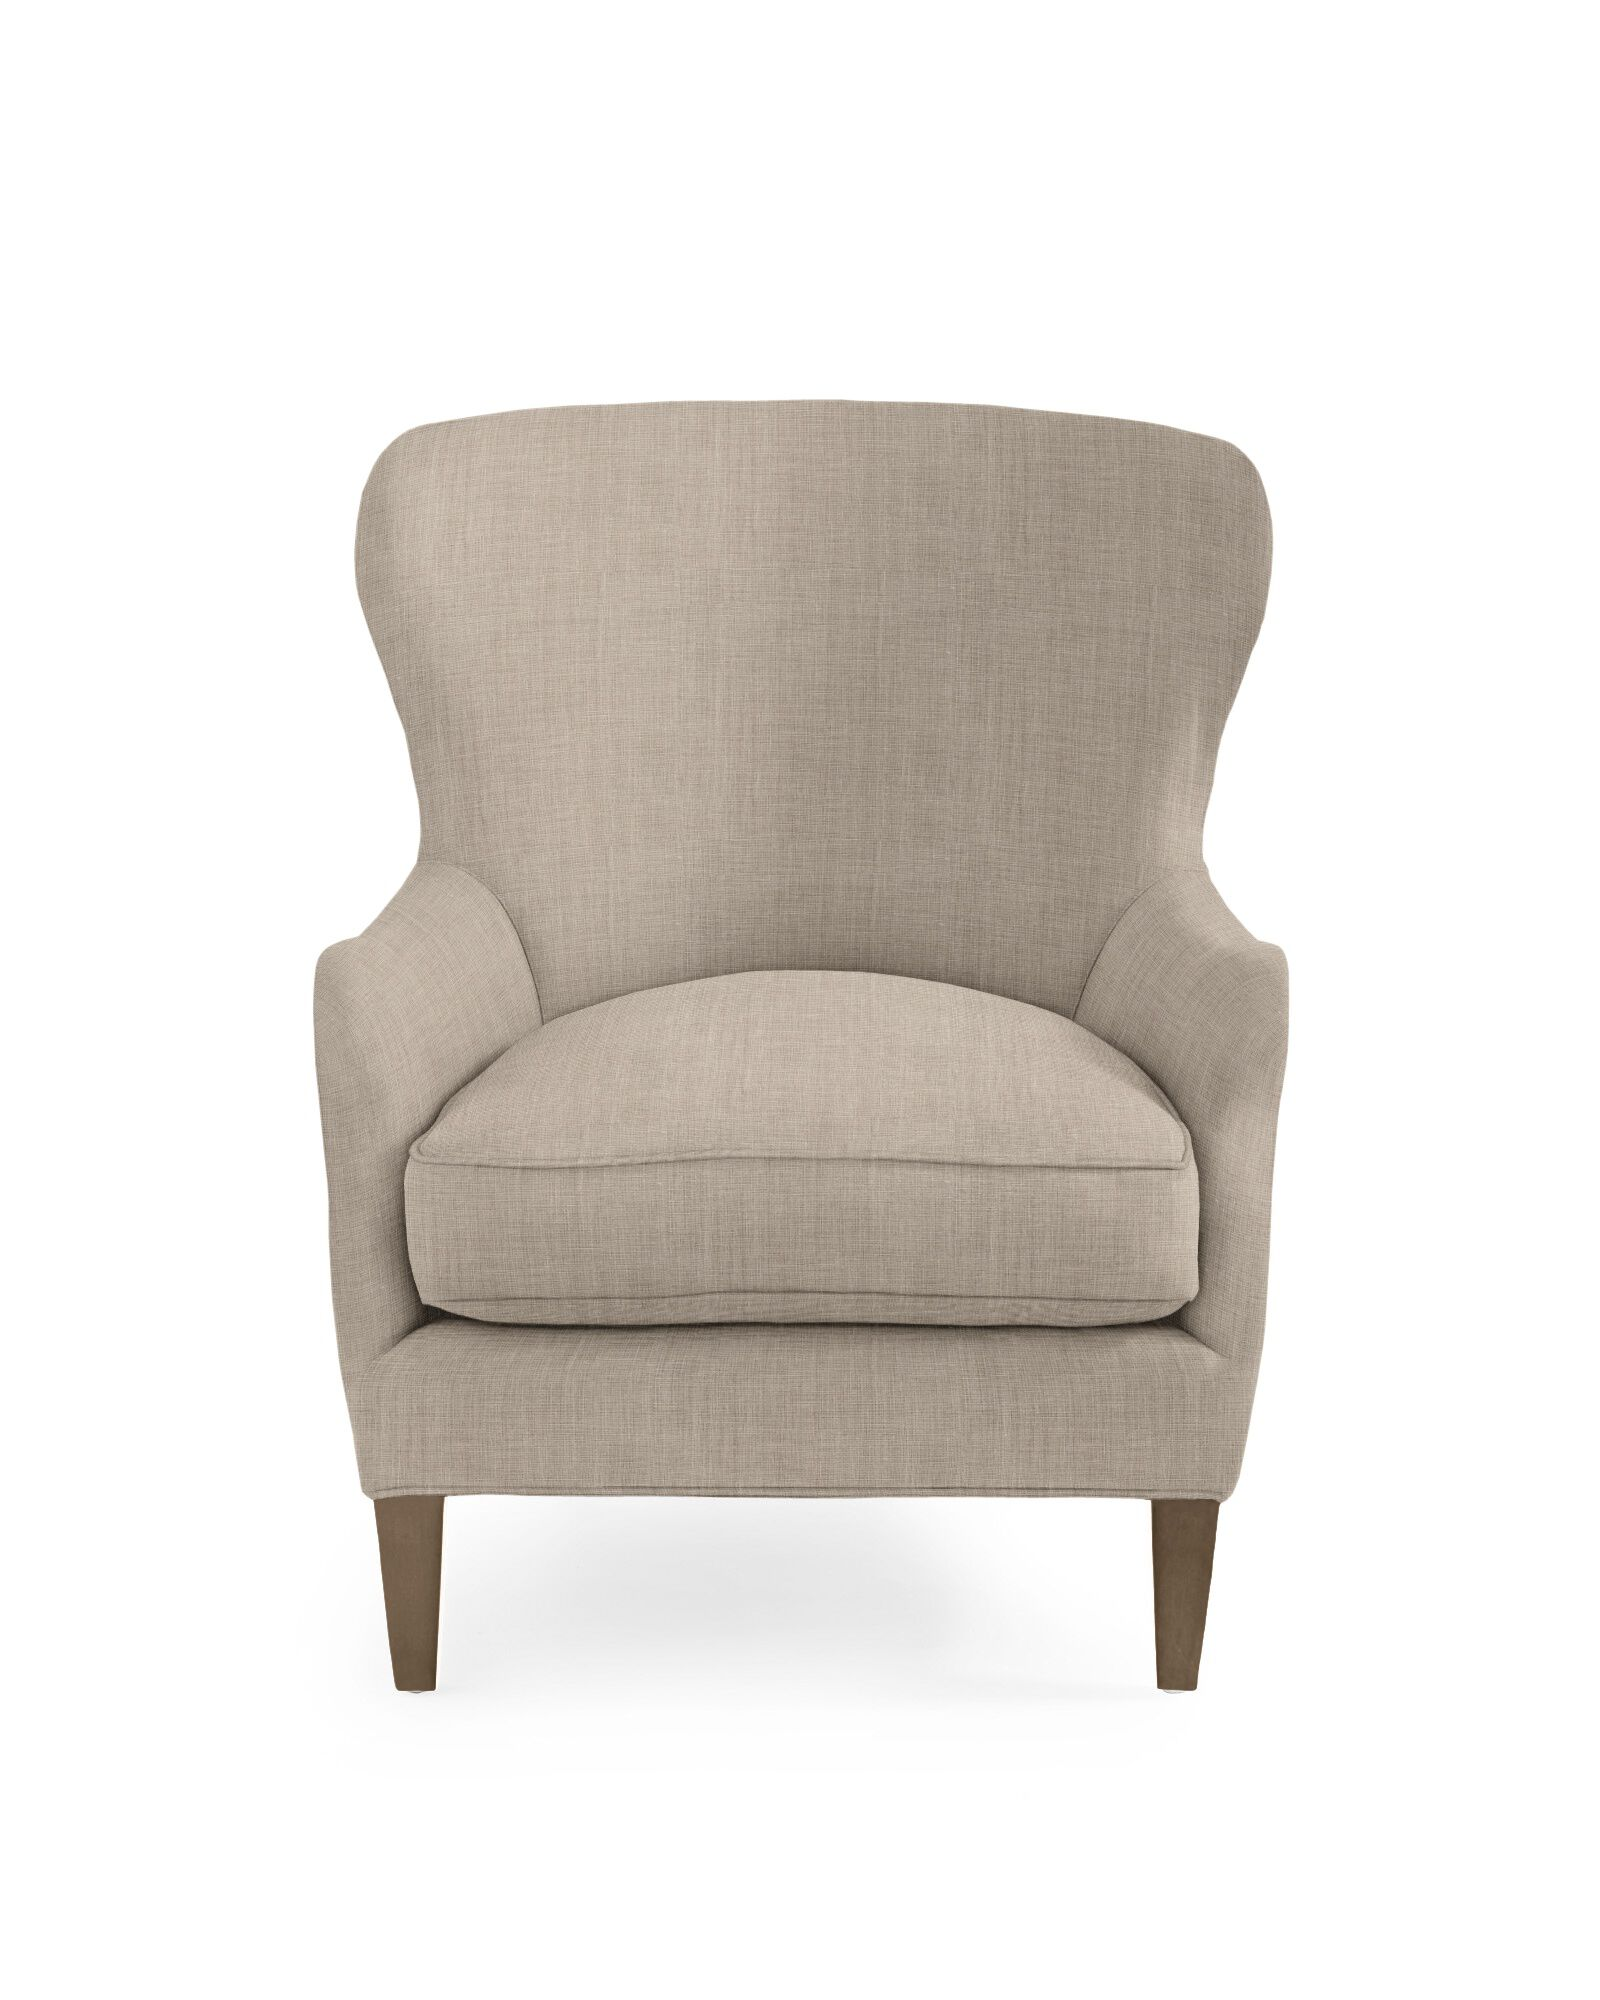 Thompson Wing Chair - Twine Washed Linen